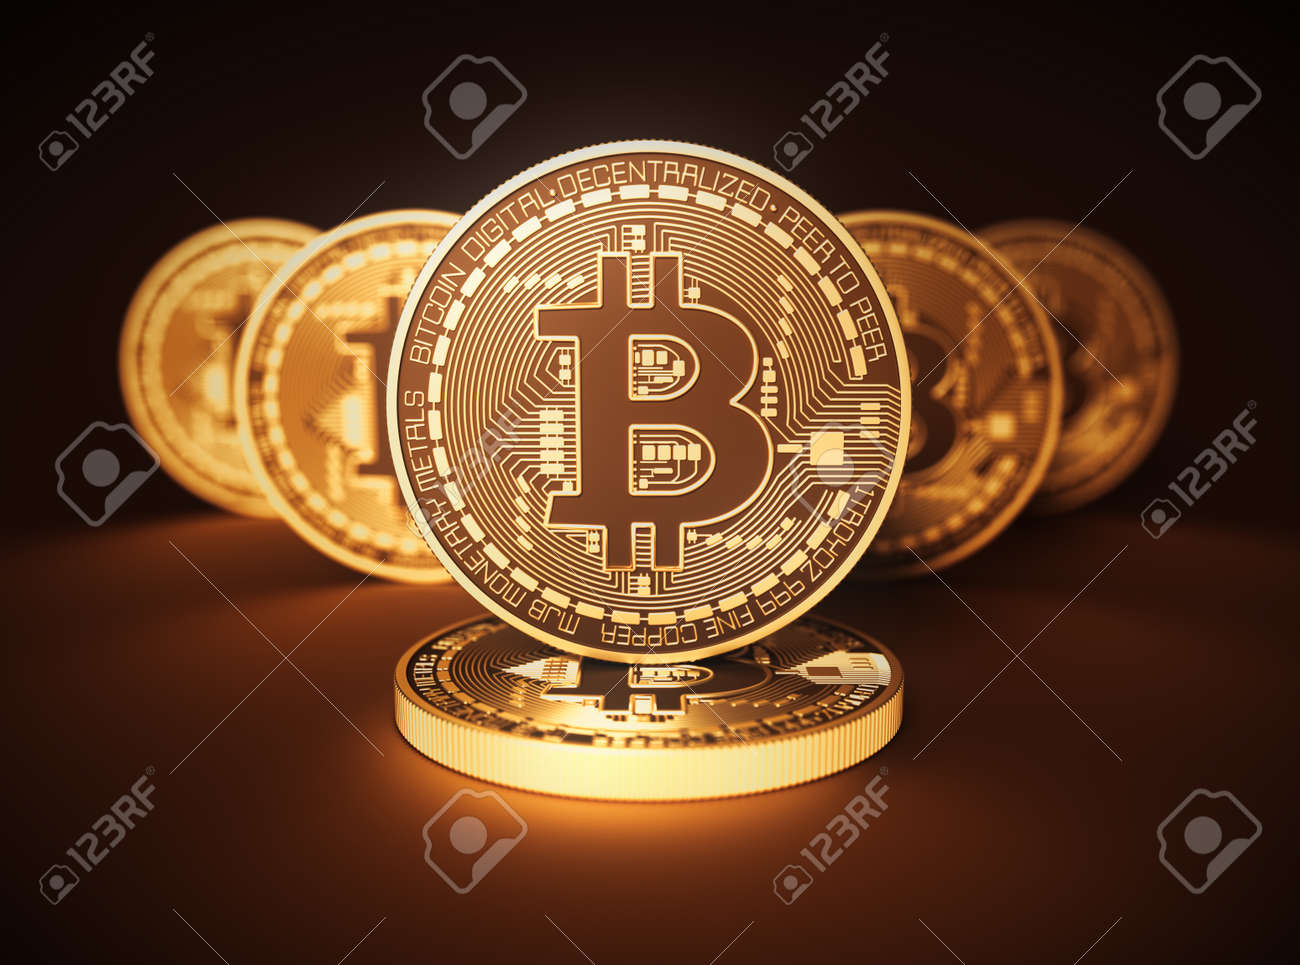 Virtual Coins Bitcoins On Brown Background - 74496371